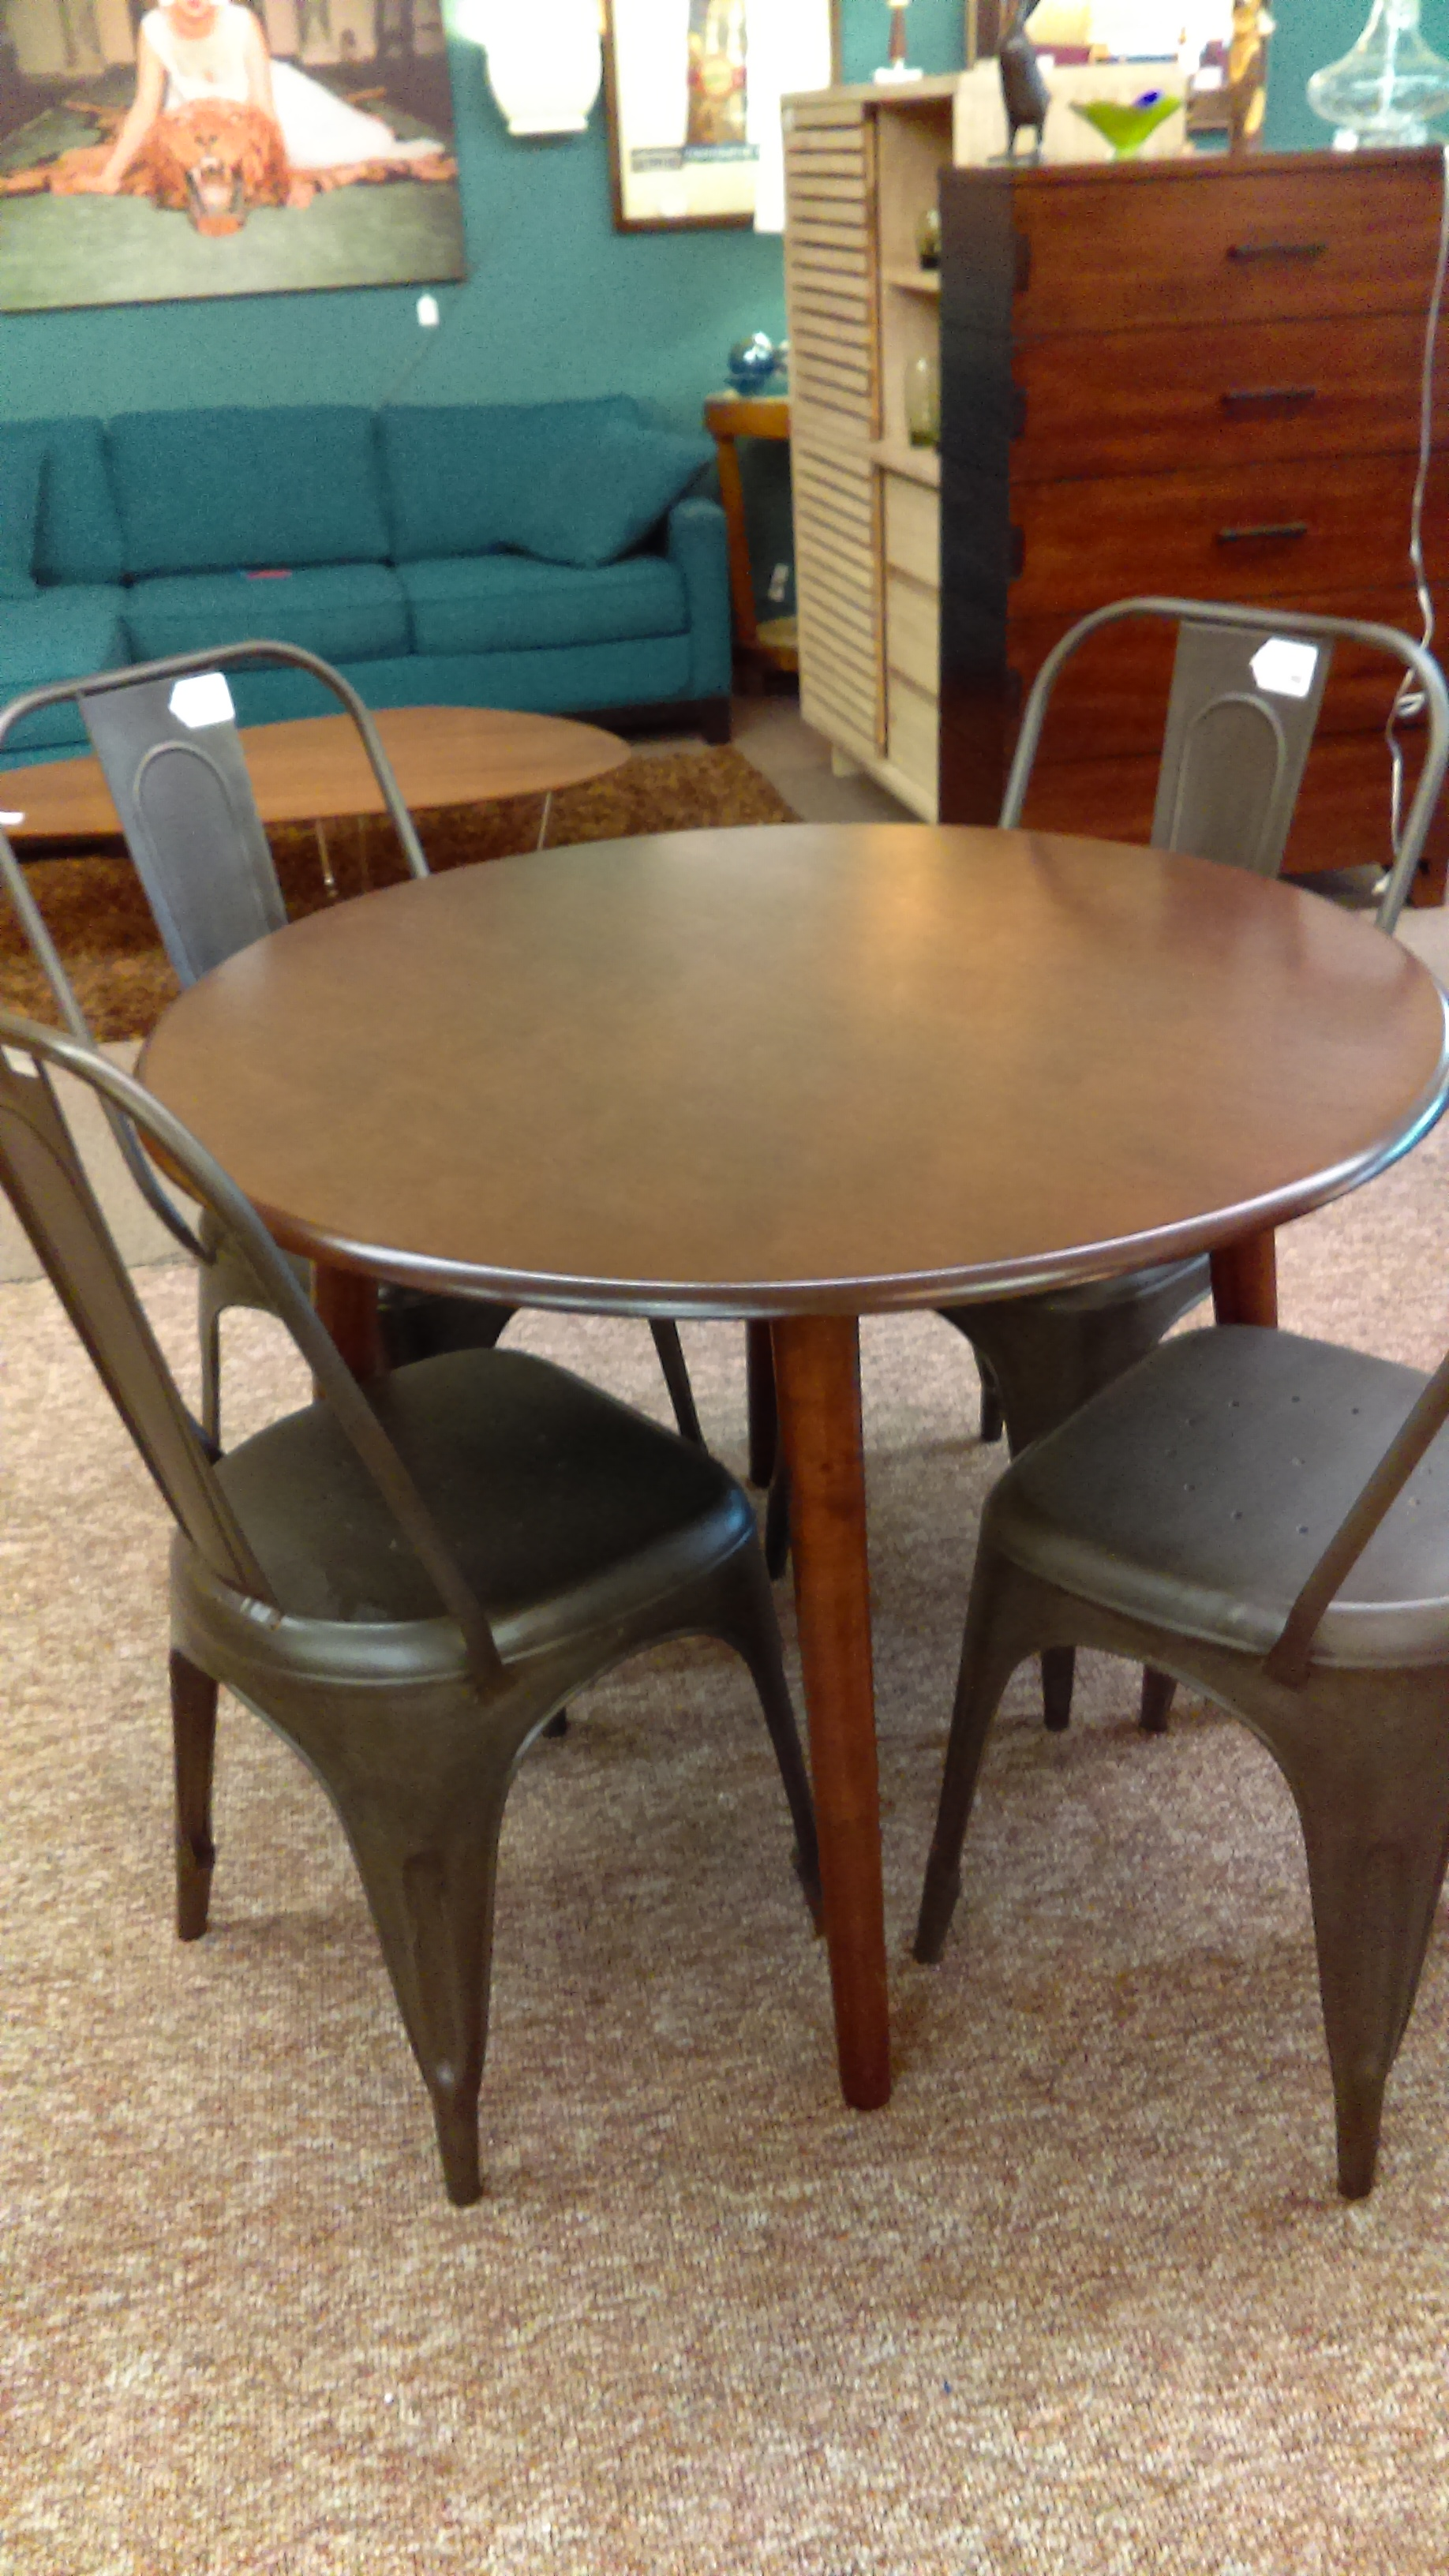 Round walnut kitchen table 150 the furniture guy for Furniture guy seattle